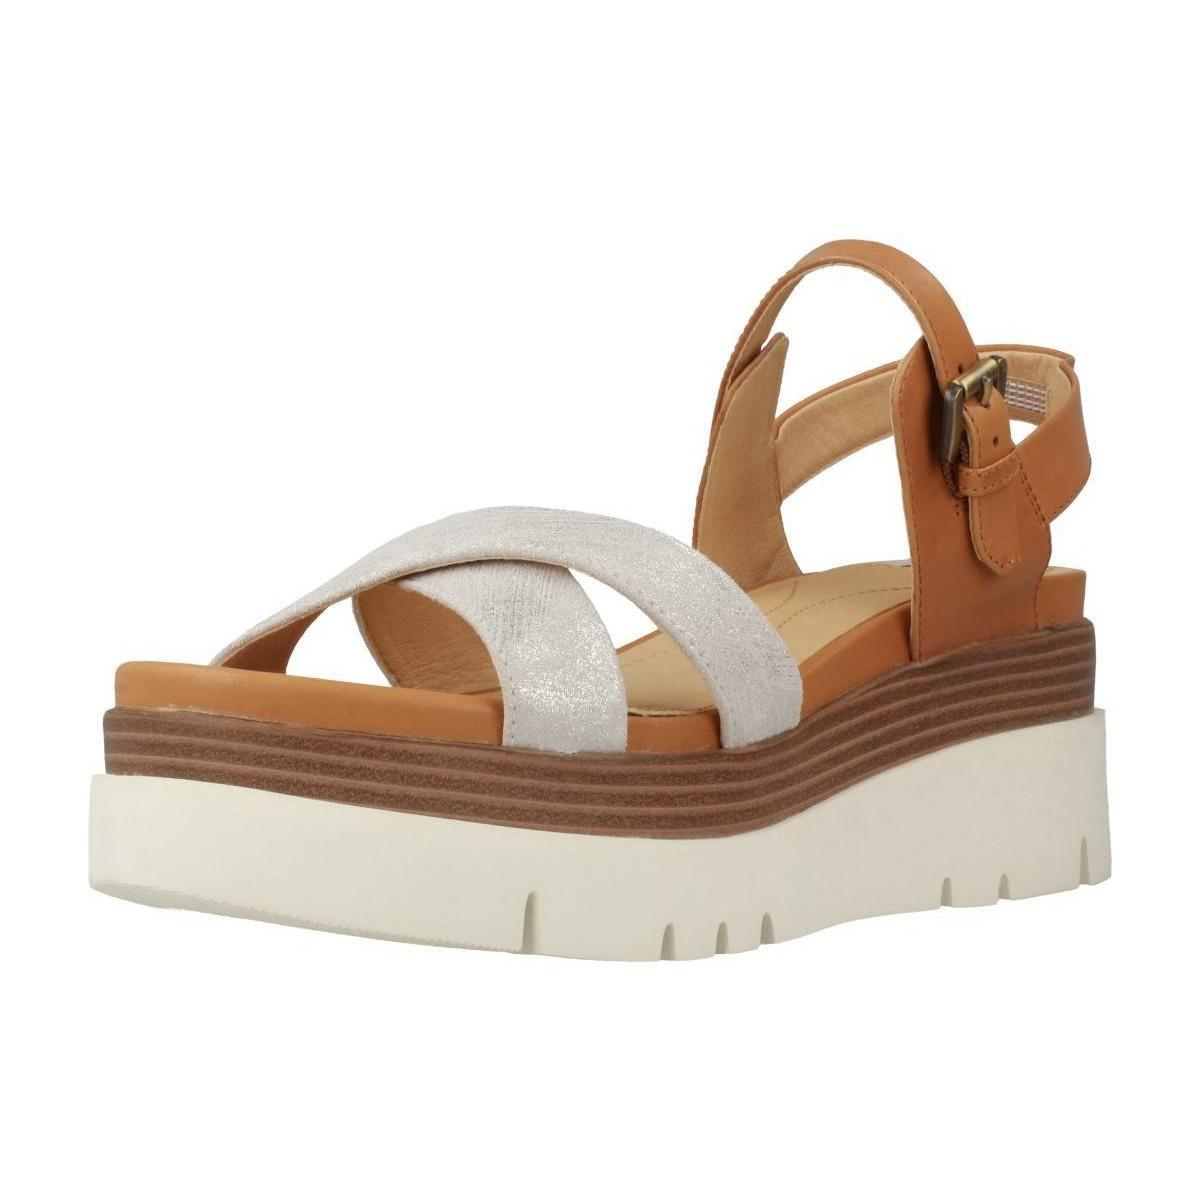 f0925888eb0 Geox D Radwa Women s Sandals In Brown in Brown - Lyst